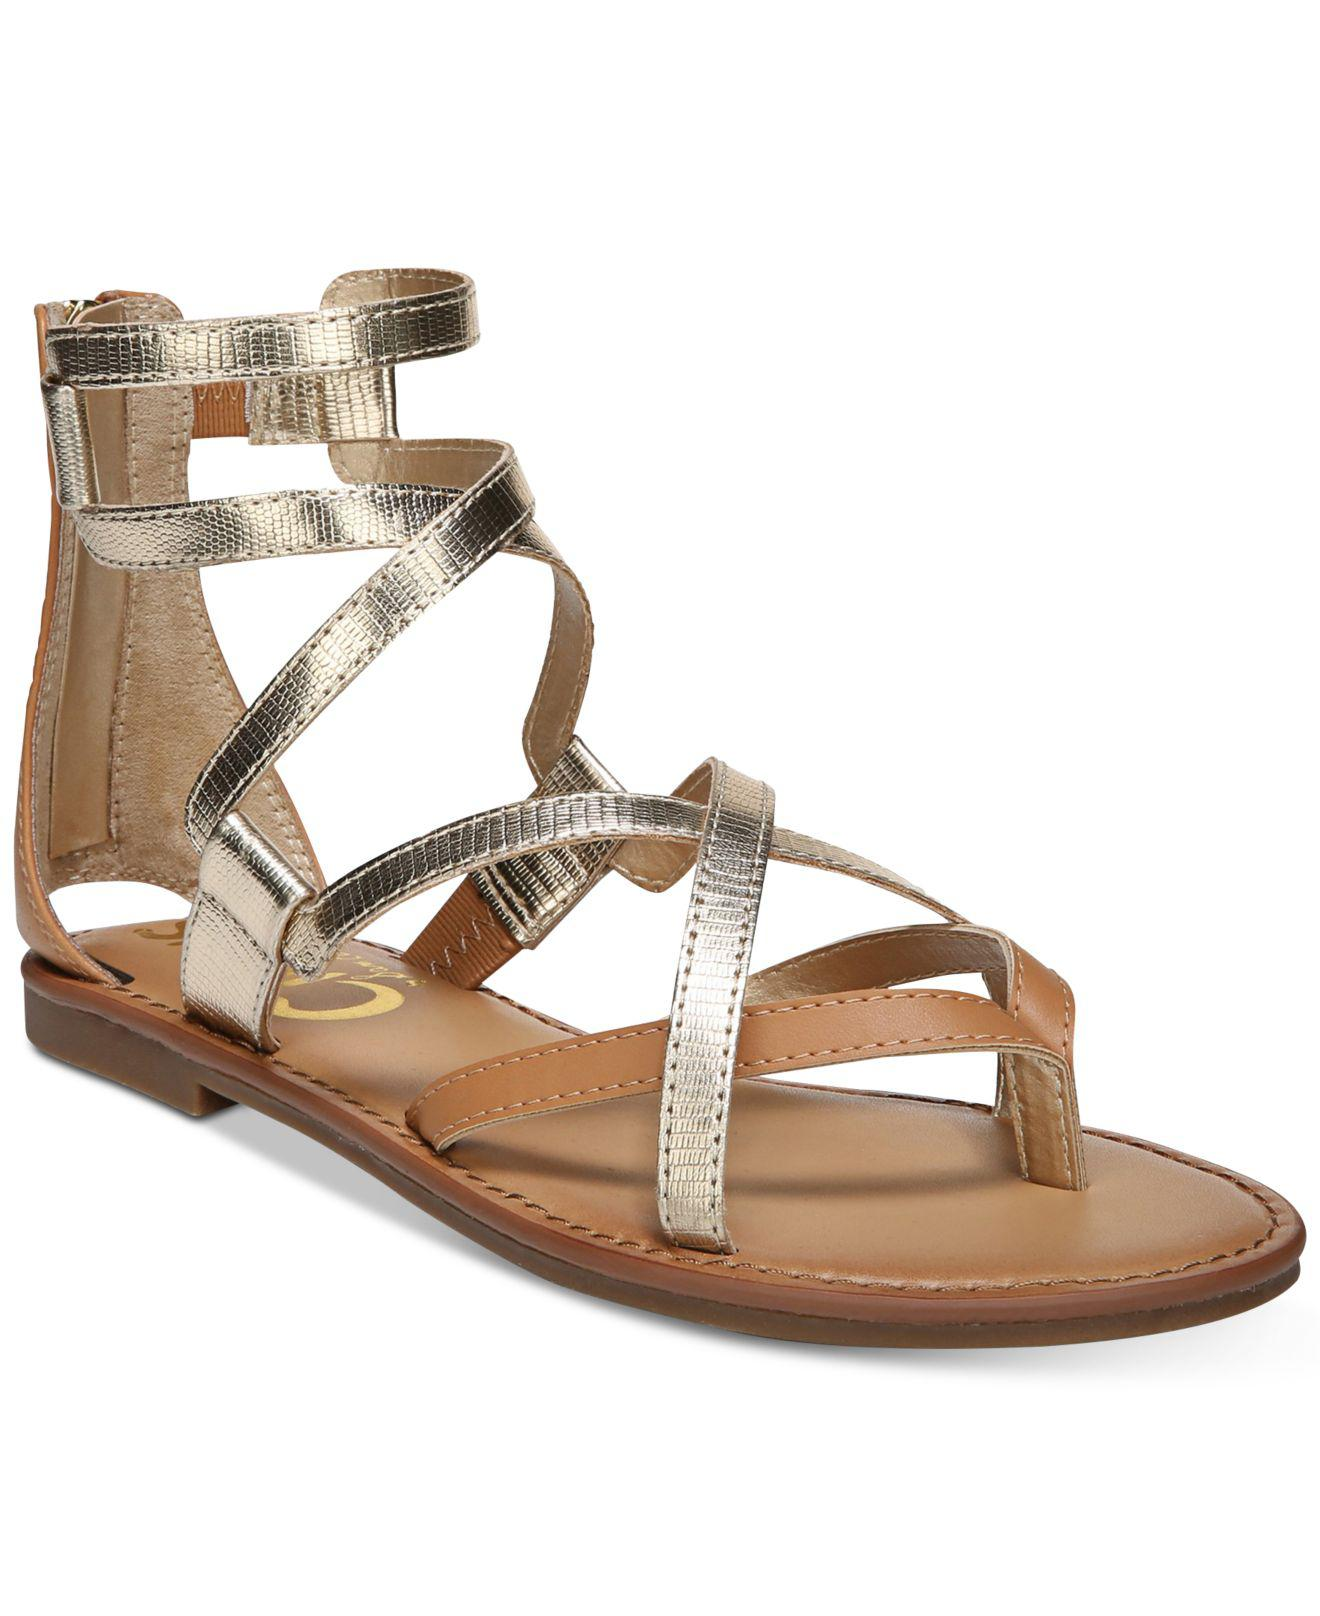 7bf1d8652c116a Gallery. Previously sold at  Macy s · Women s Gladiator Sandals Women s  Jelly Flats ...